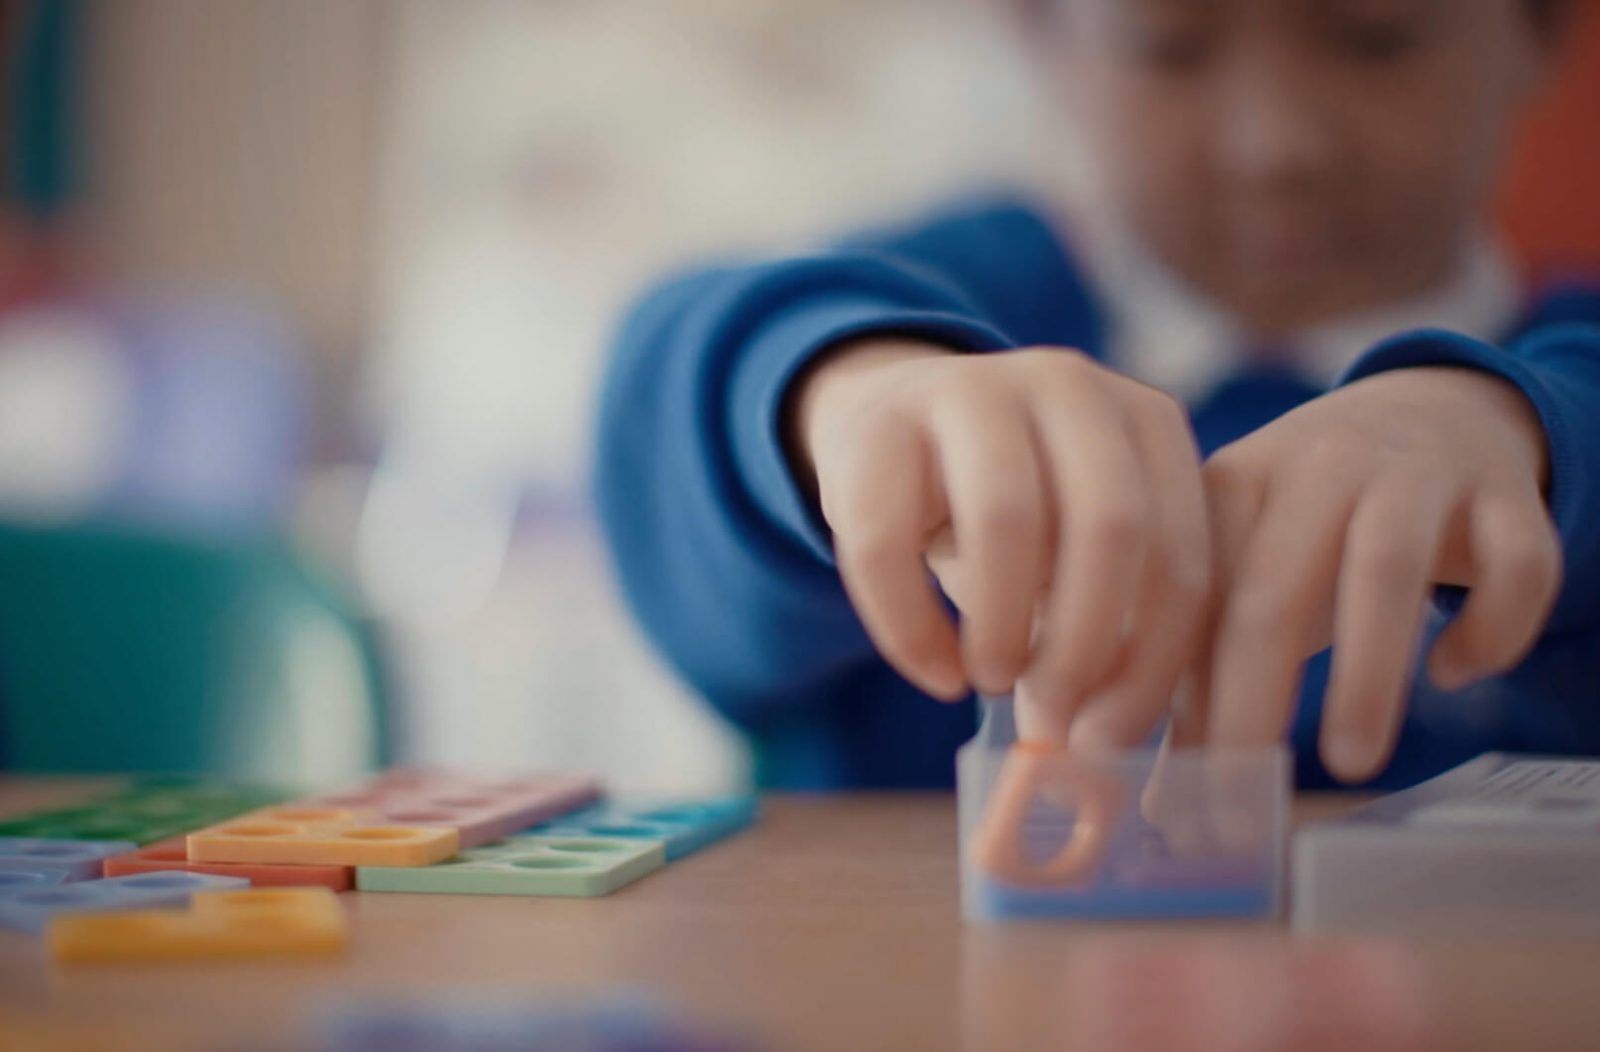 Image of child creating images using coloured plastic shapes